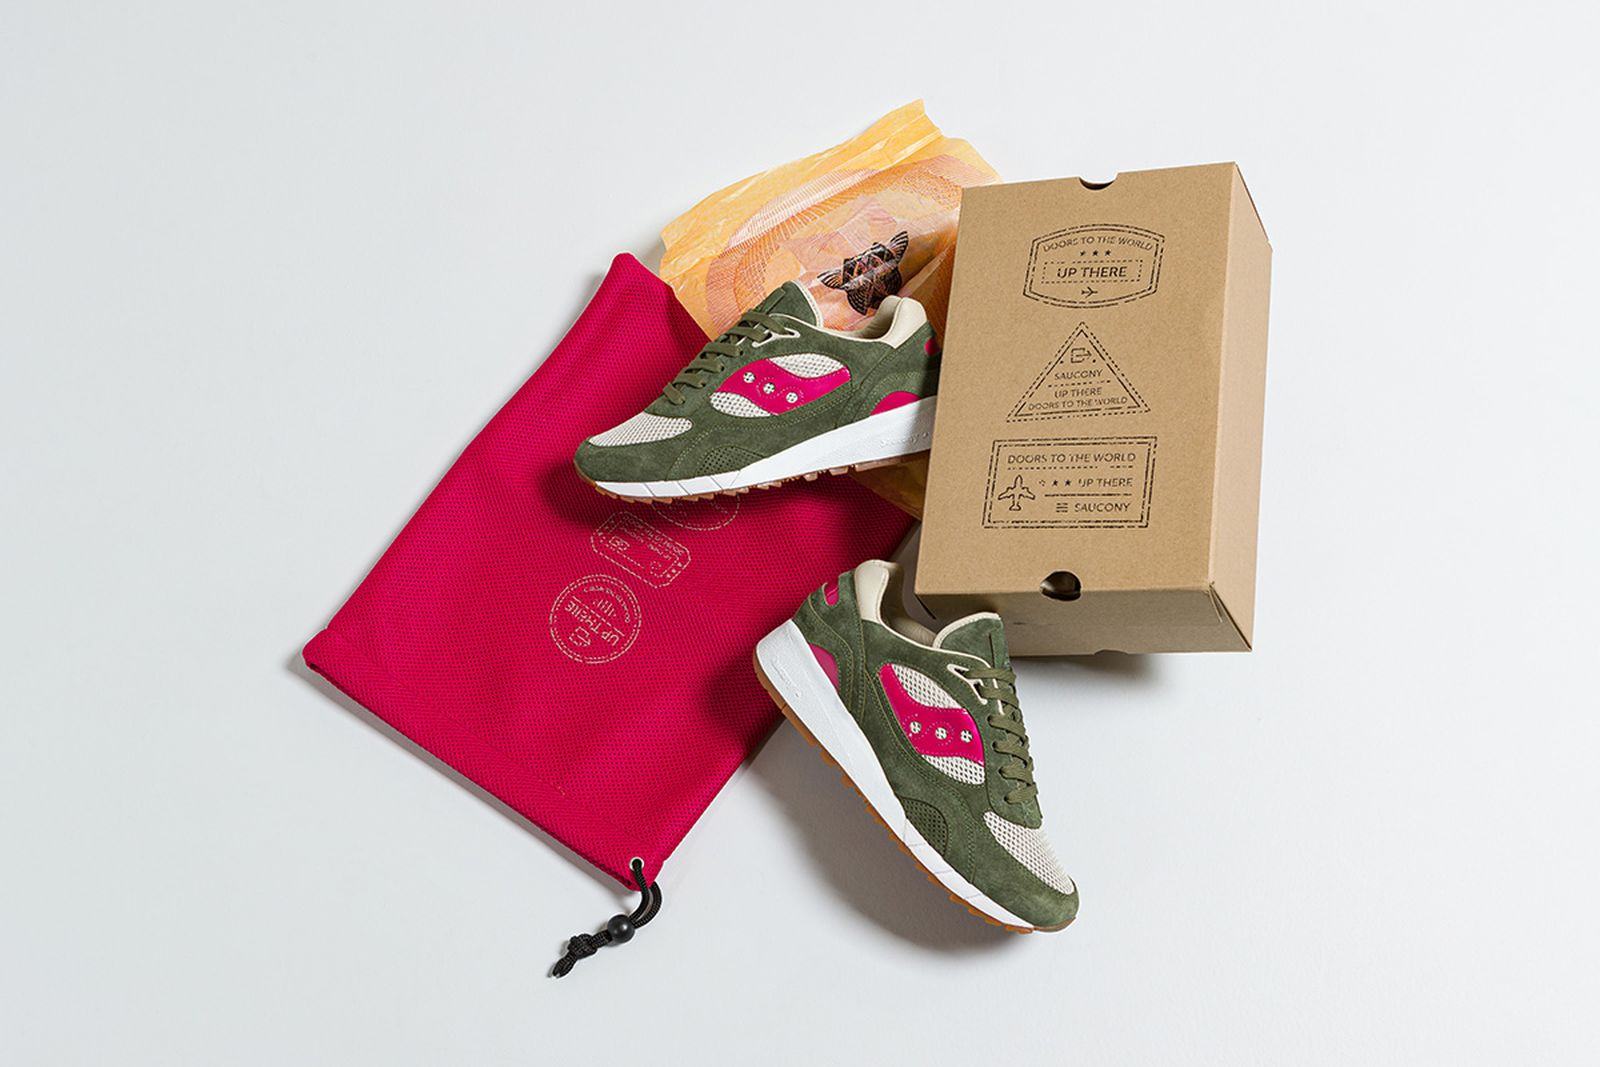 up-there-saucony-shadow-6000-release-date-price-02